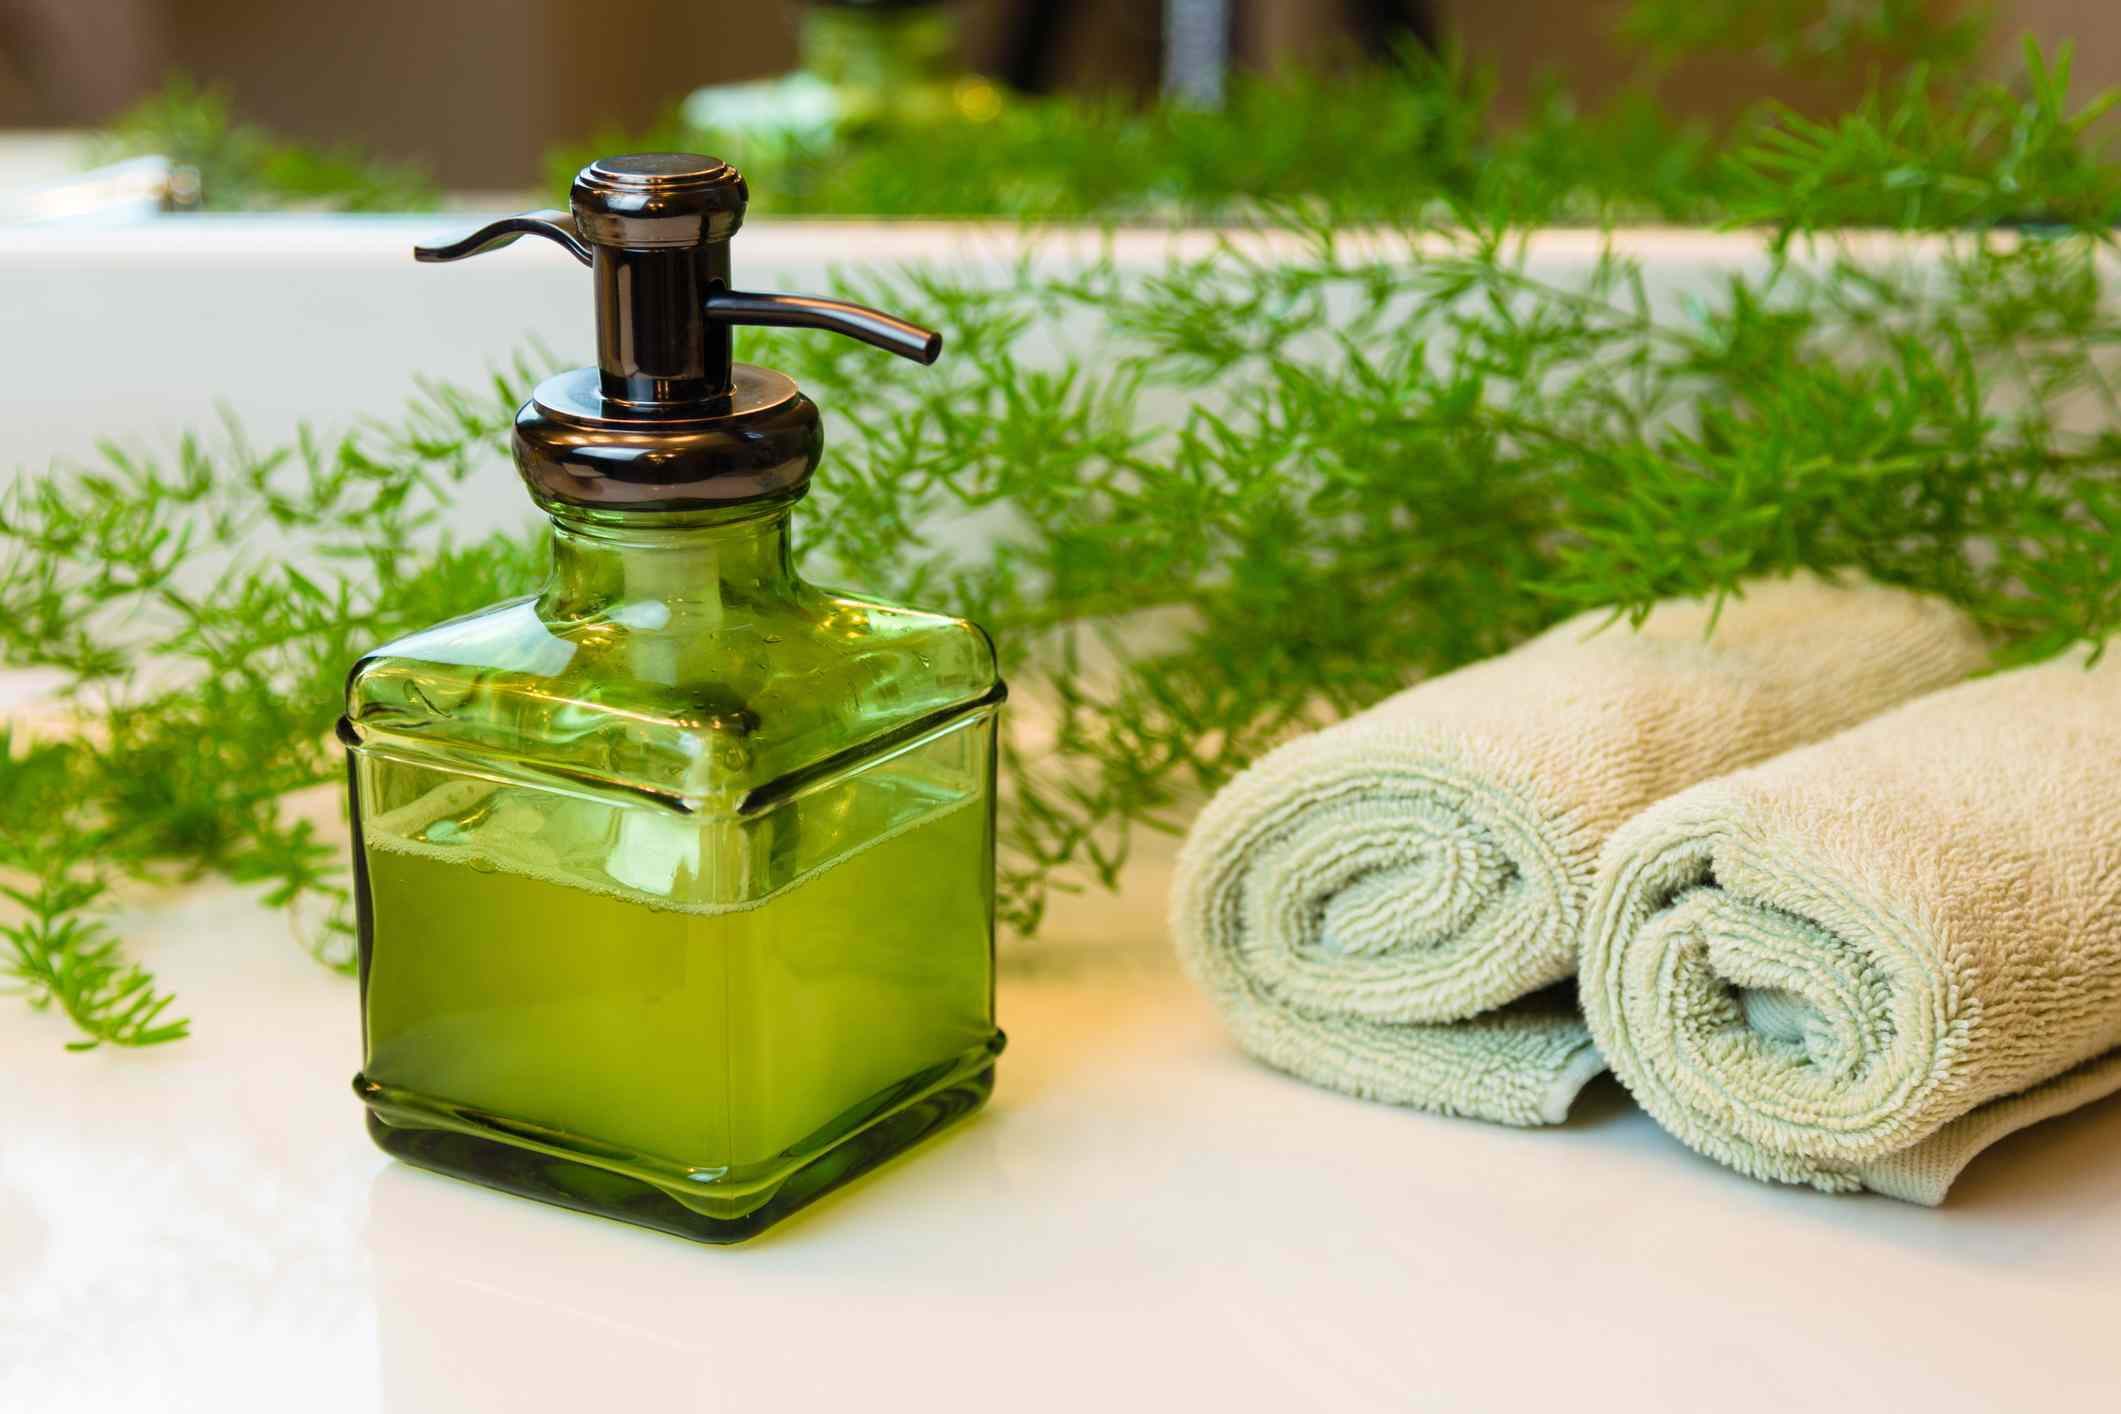 Pump green glass bottle with liquid castile soap. Rolled green towels in a spa setting. Green plant decor in background. Bathroom white countertop